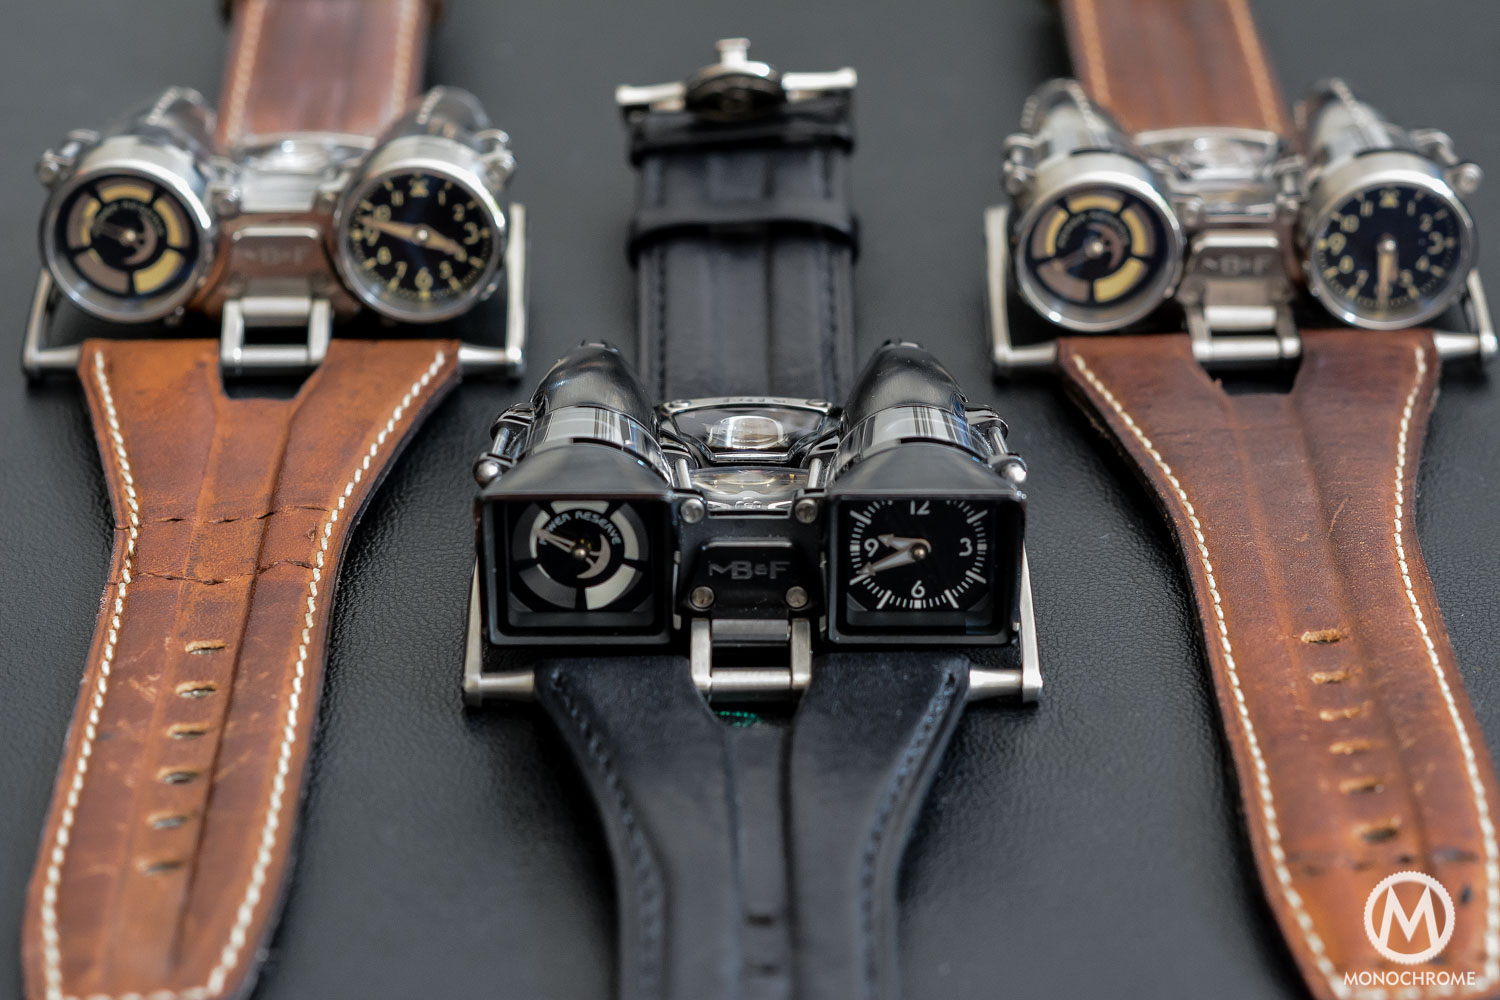 MB&F HM4 Razzle Dazzle - MB&F HM4 Double Trouble - MB&F HM4 Final Edition